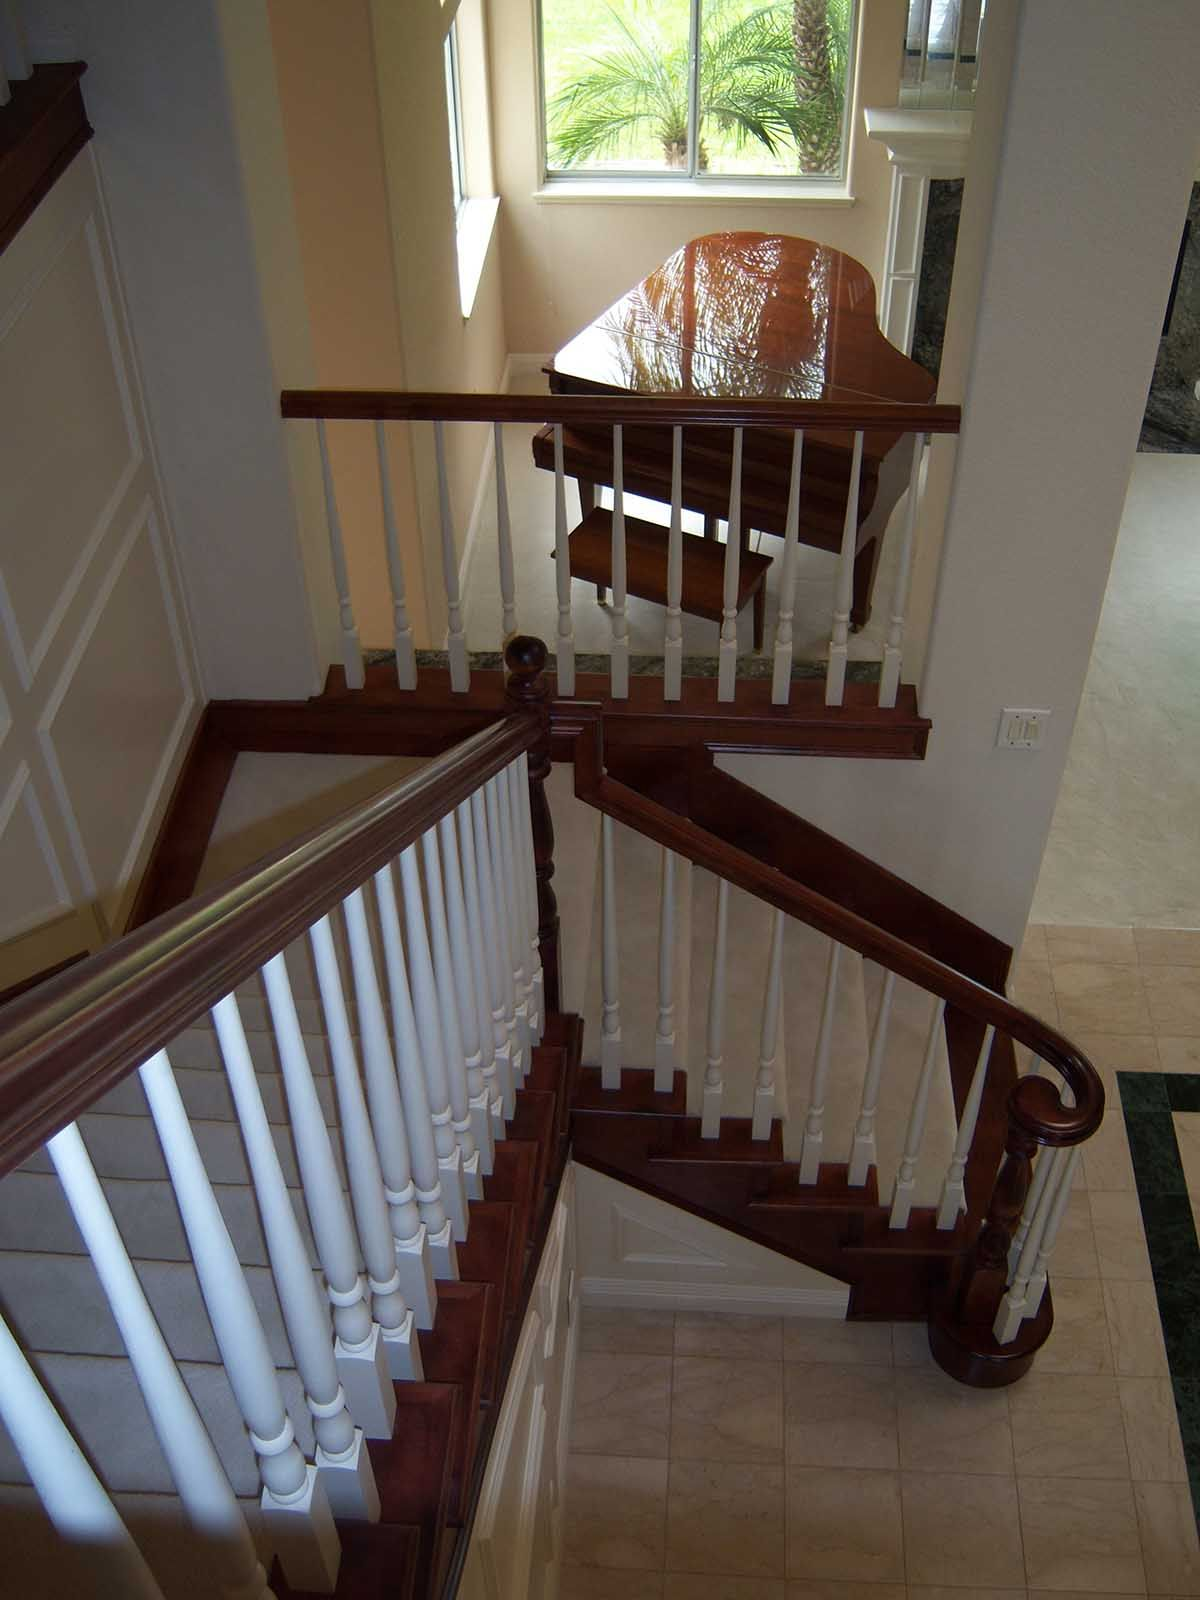 Southern California Contractor For Custom Stairs And Railings We Provide